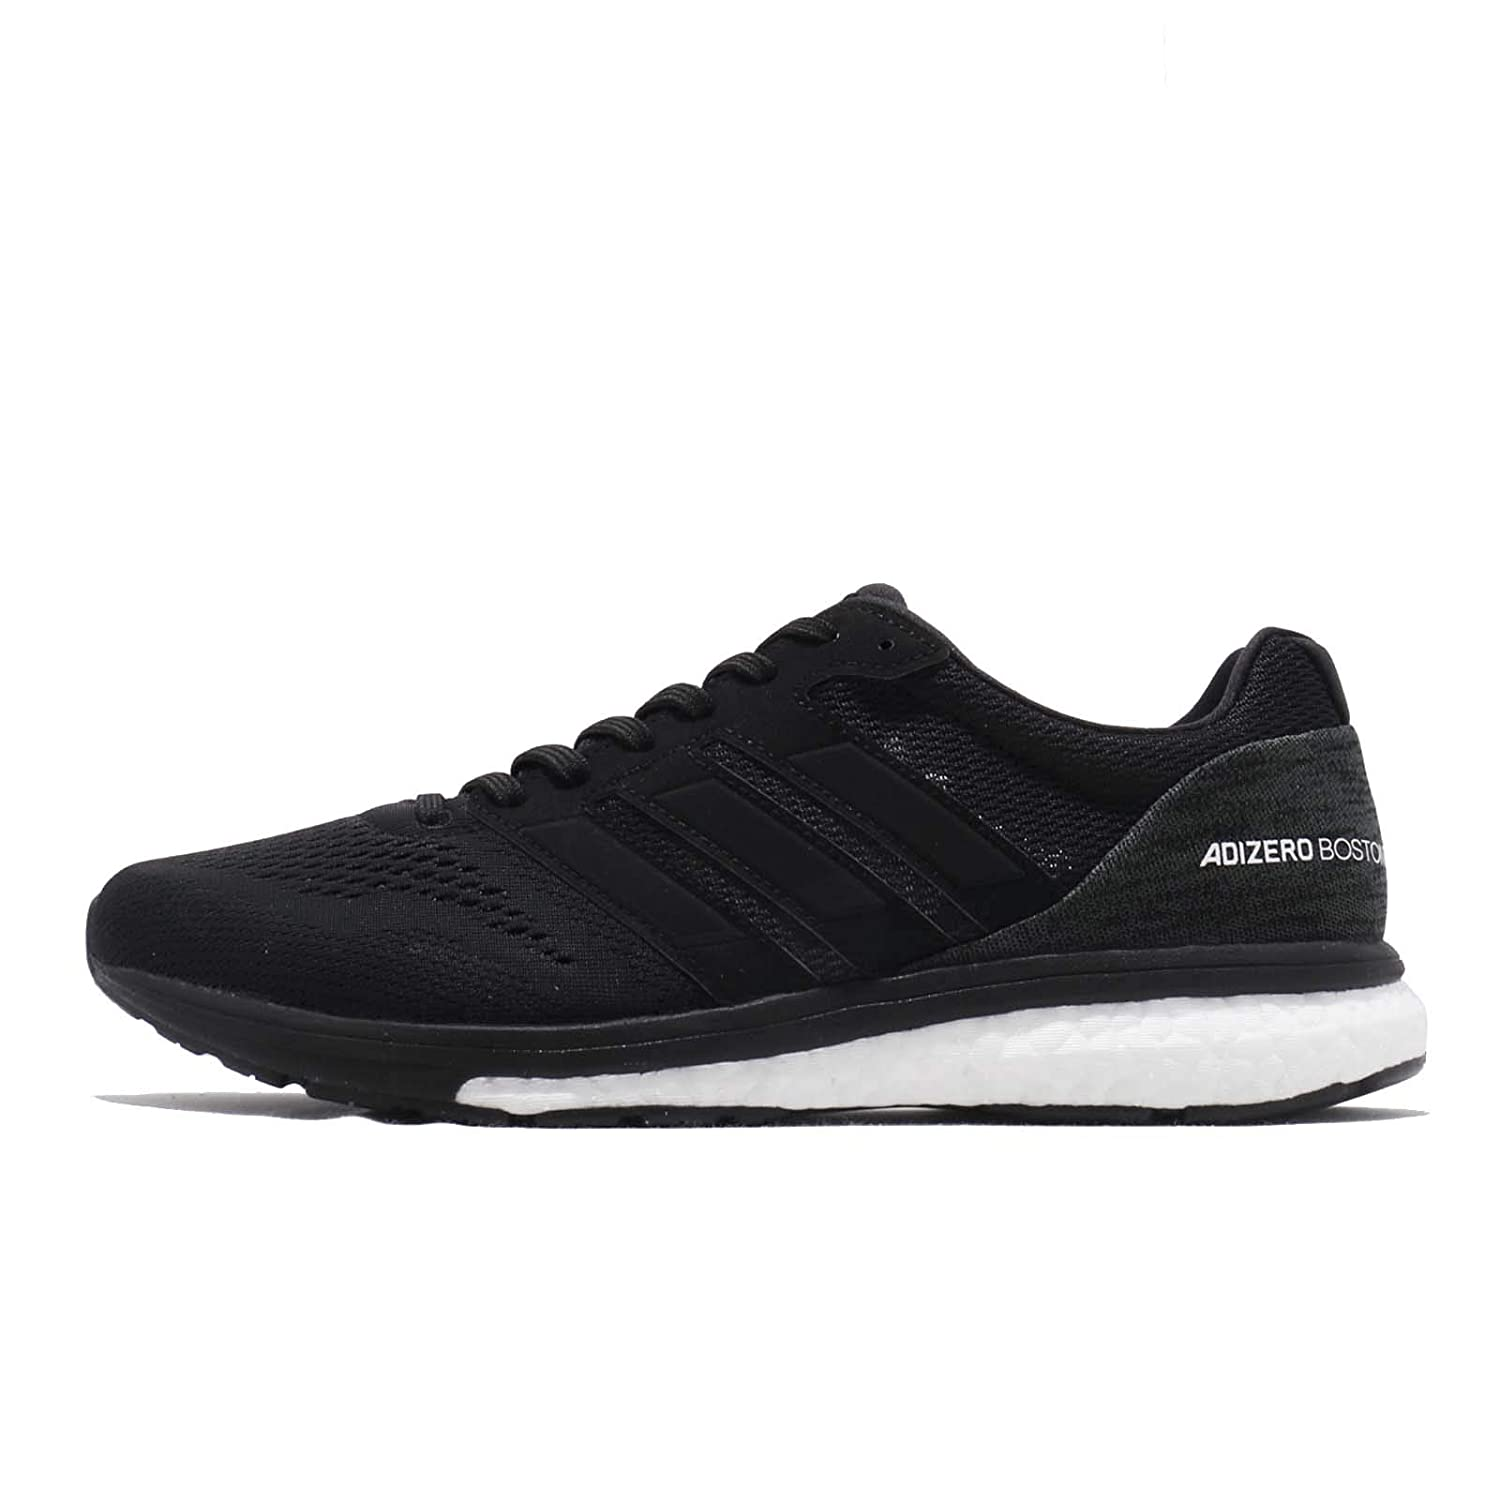 贈り物 (アディダス) 26.0 アディゼロ ボストン 7 7 M B07MCLHNK7 メンズ ランニング シューズ adidas Adizero Boston 7 M B37382 [並行輸入品] B07MCLHNK7 CORE BLACK/ CLOUD WHITE/ CARBON 26.0 cm 26.0 cm|CORE BLACK/ CLOUD WHITE/ CARBON, フクママチ:8d75de36 --- a0267596.xsph.ru